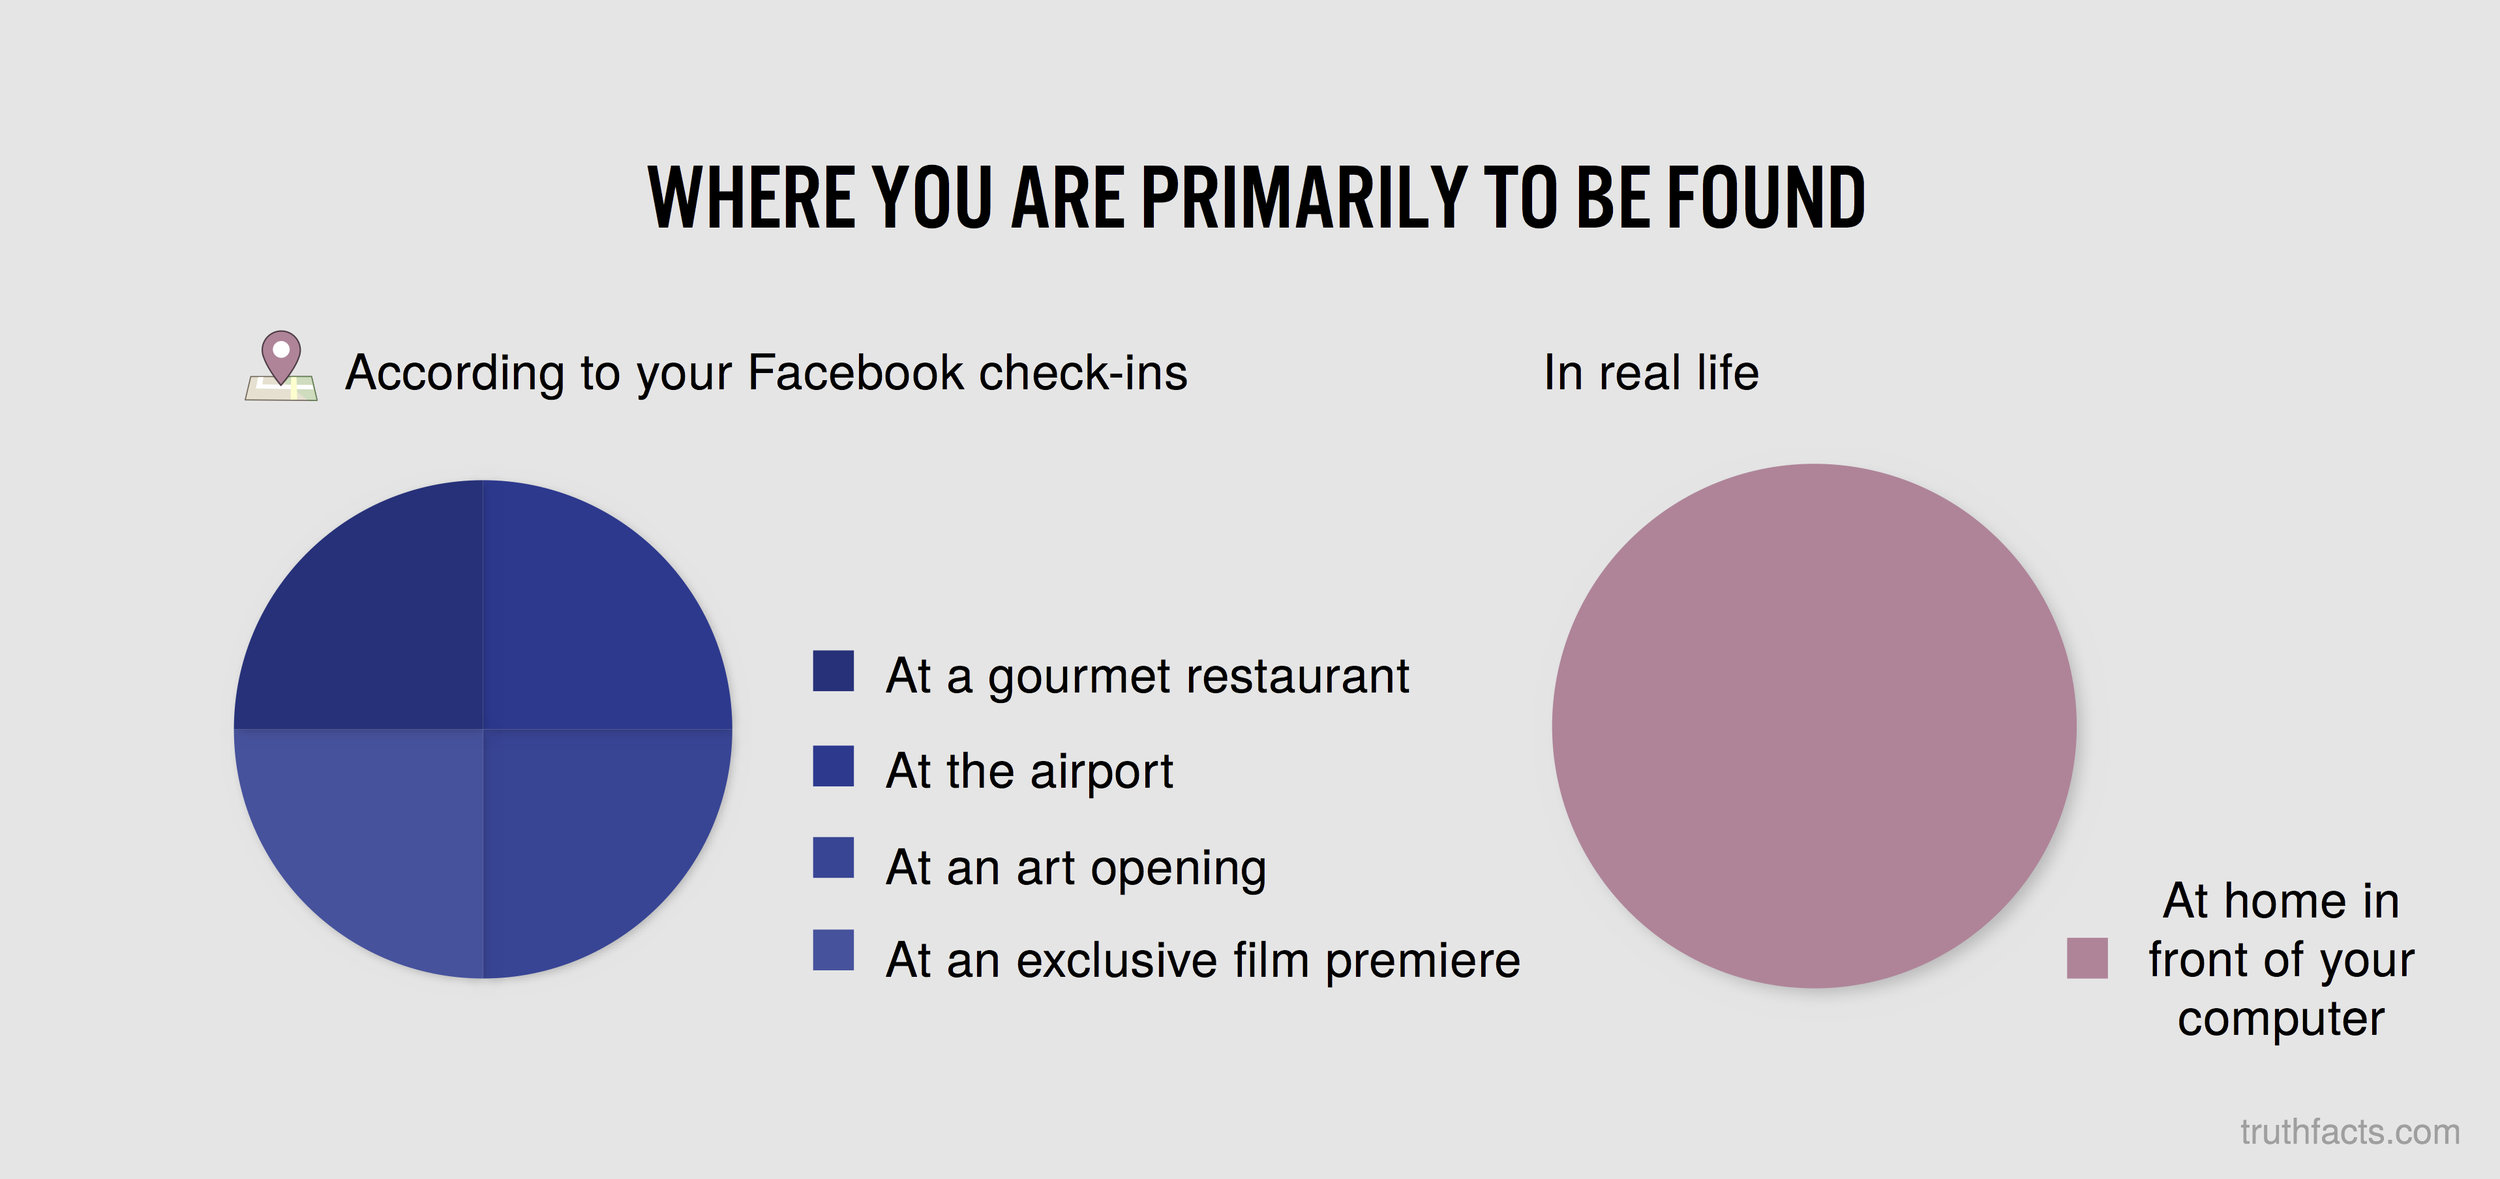 Where you are primarily to be found